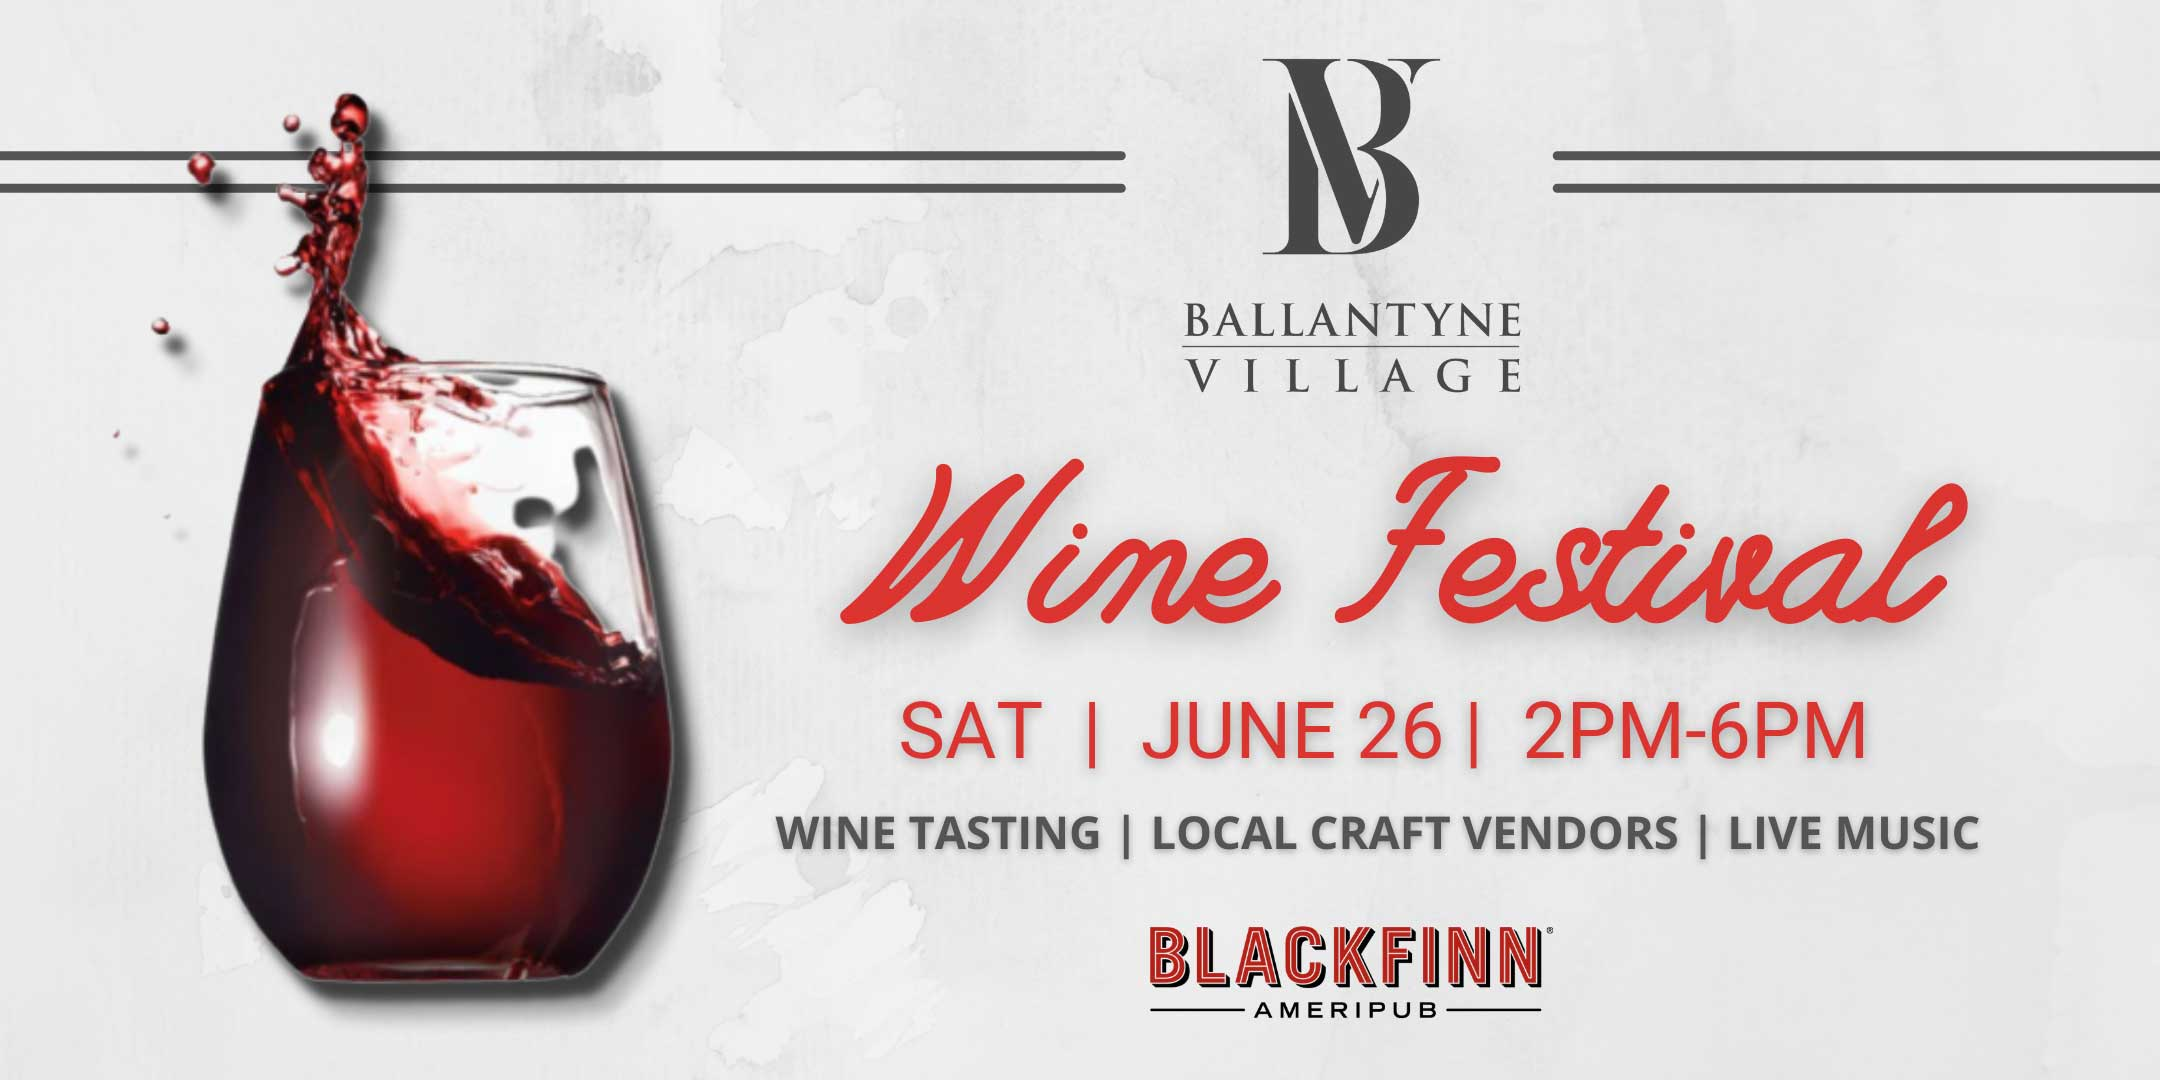 Image shows a glass of wine with the information about Wine Festival on Saturday, June 26 , 2021